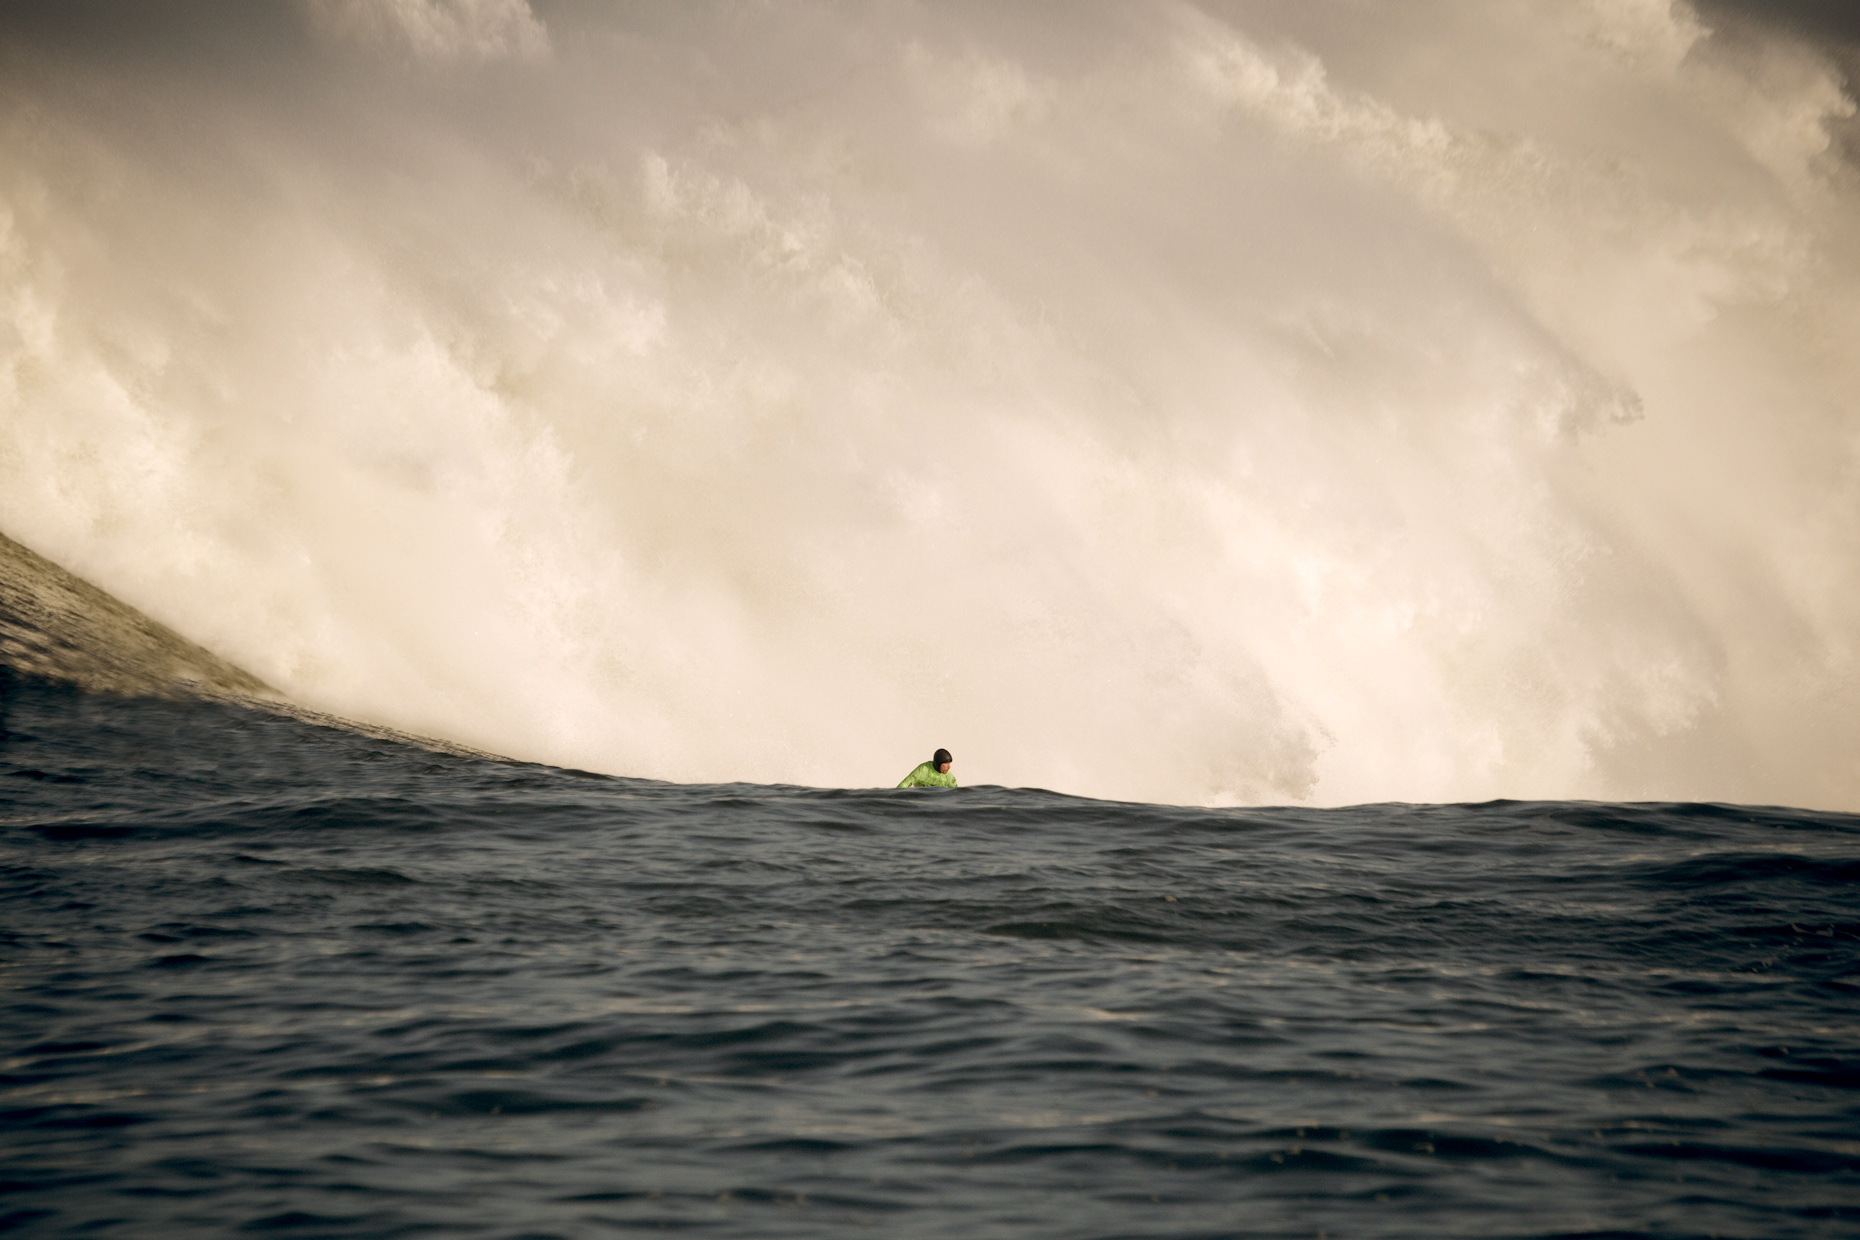 Projects Action Photography Derek Israelsen 002 Surf Waiting